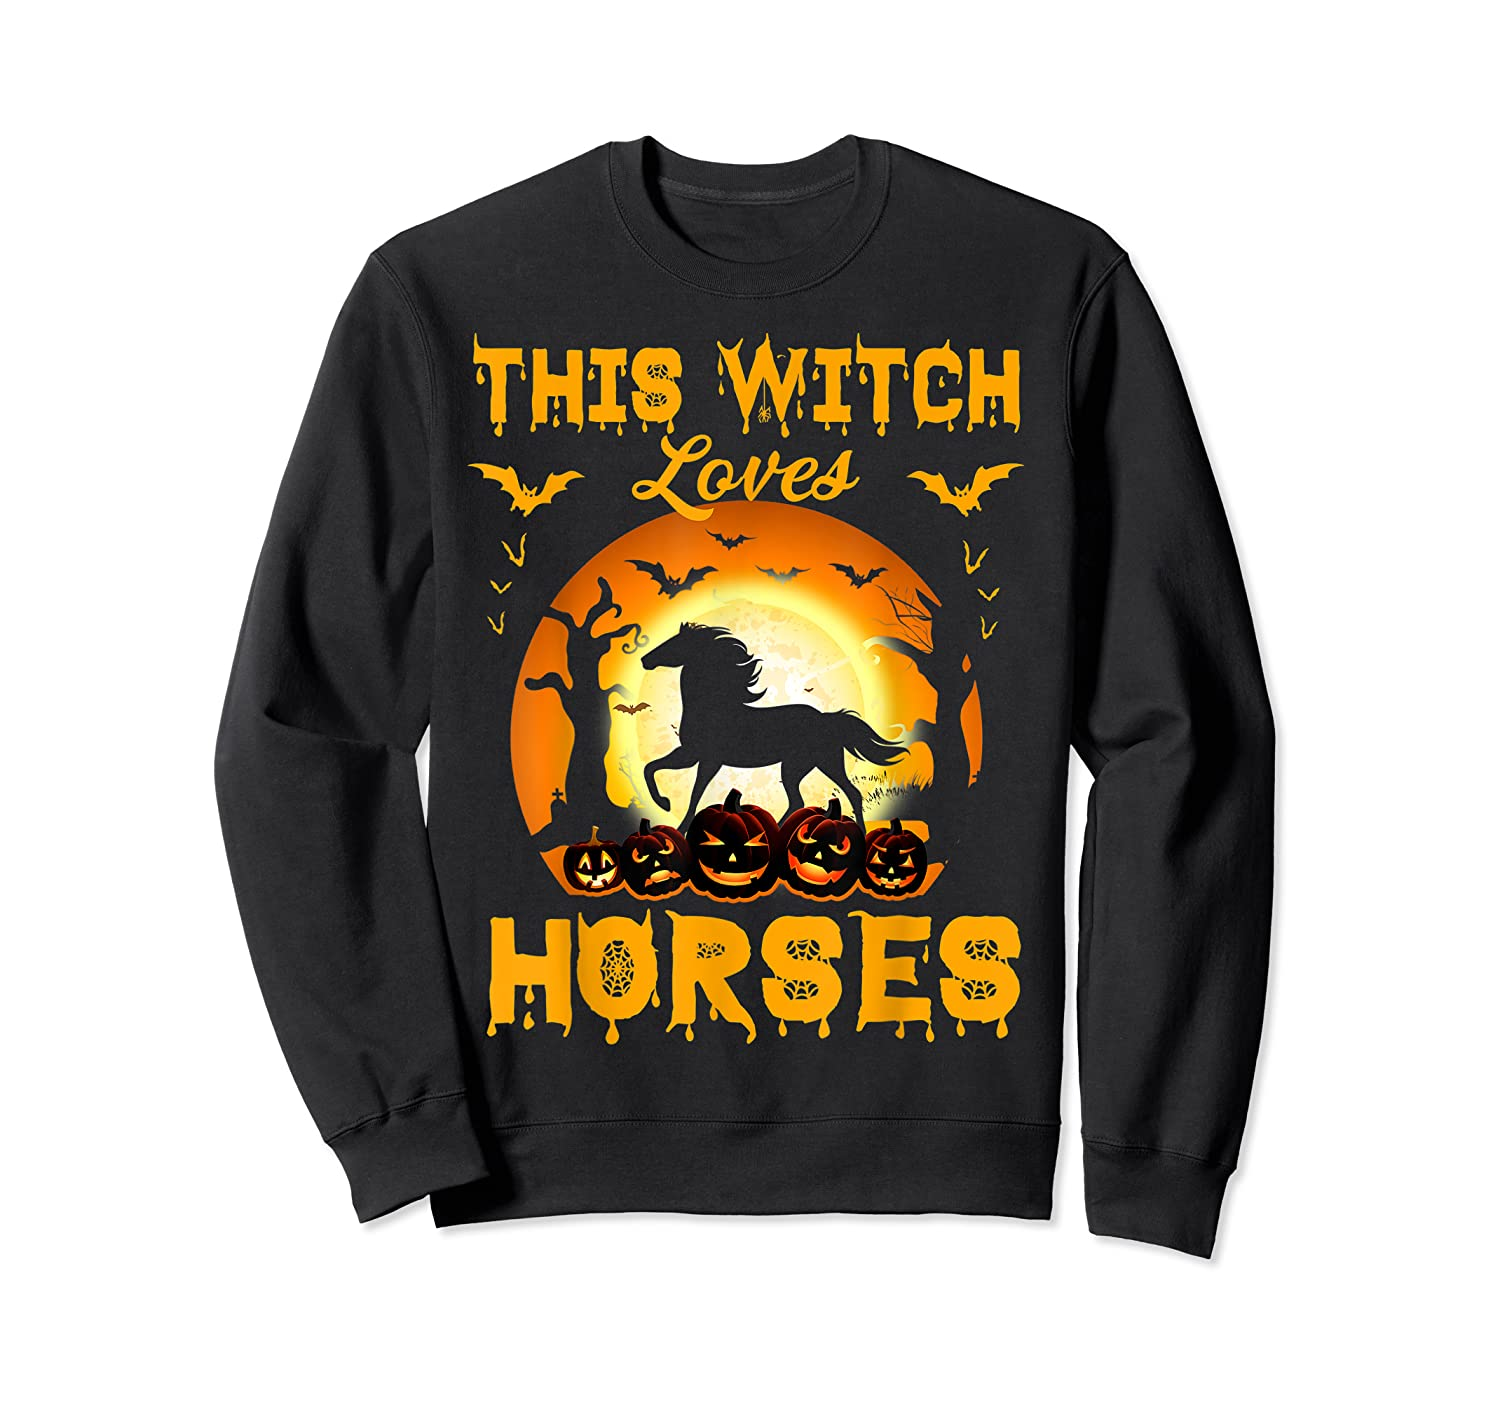 This Witch Loves Horses T-shirt Halloween Cosplay Crewneck Sweater